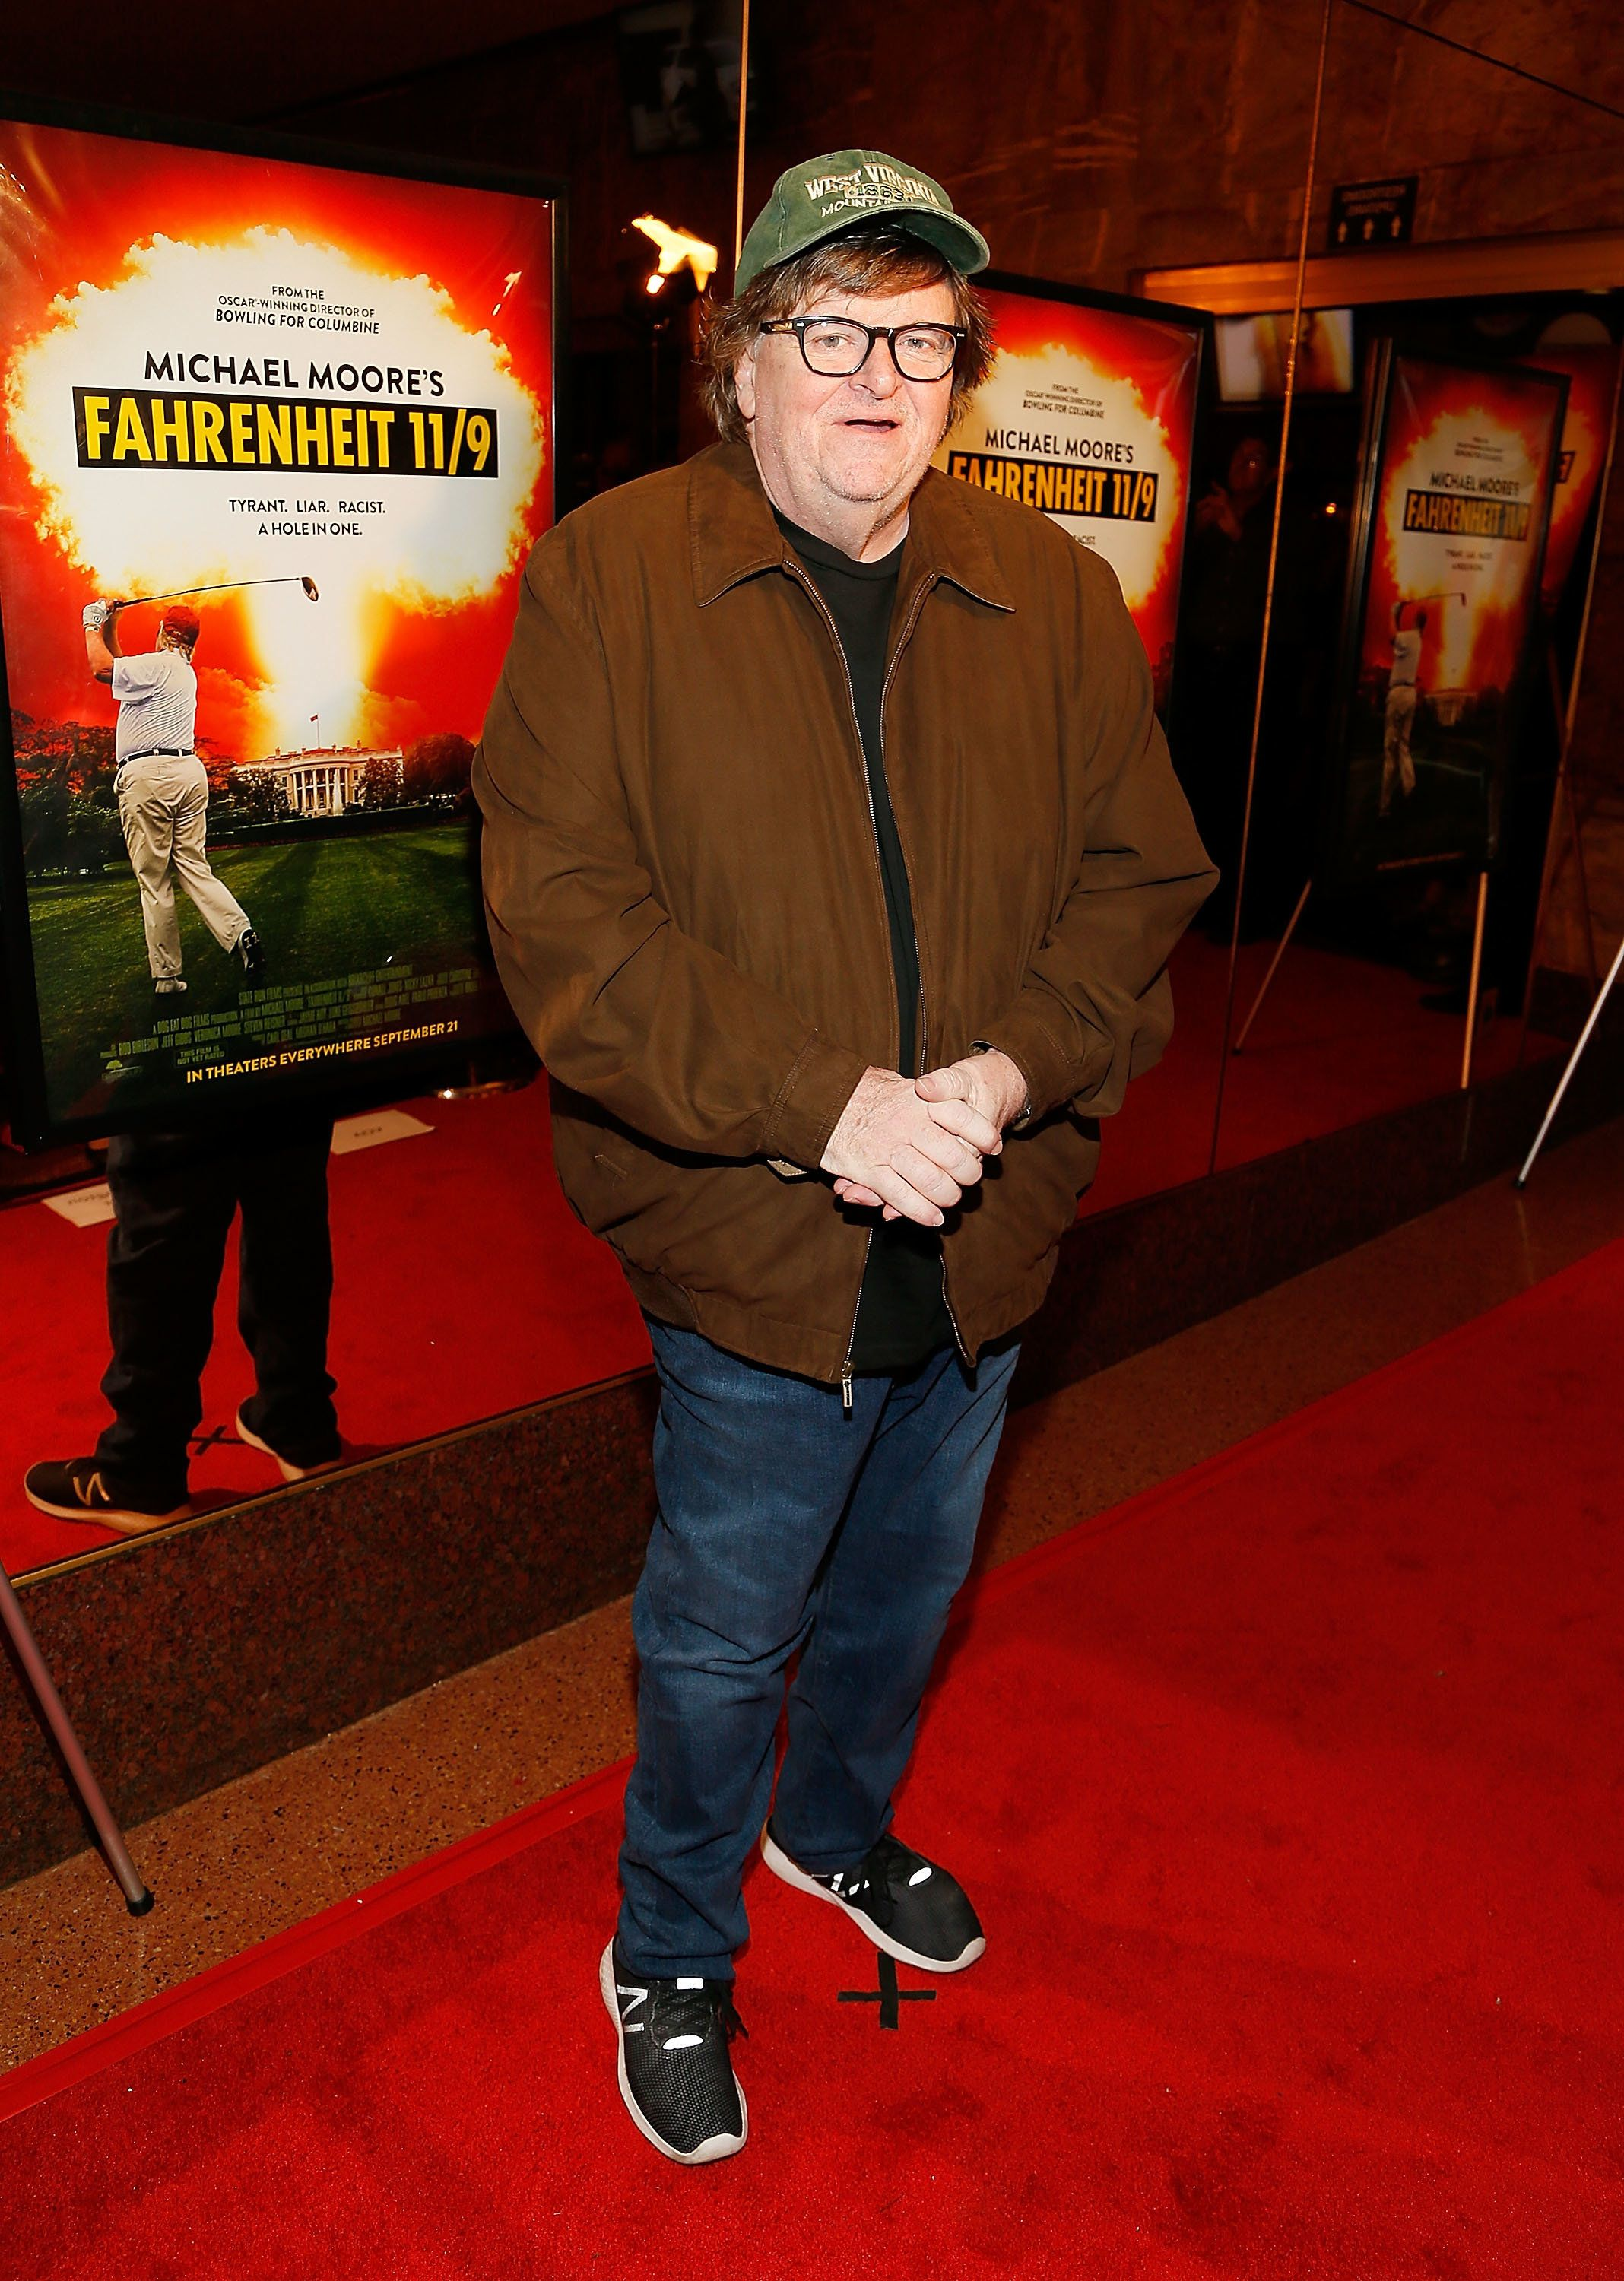 WASHINGTON, DC - SEPTEMBER 17:  Writer, producer, and director Michael Moore arrives at the 'Fahrenheit 11/9' premiere at AMC Uptown on September 17, 2018 in Washington, DC.  (Photo by Paul Morigi/Getty Images)